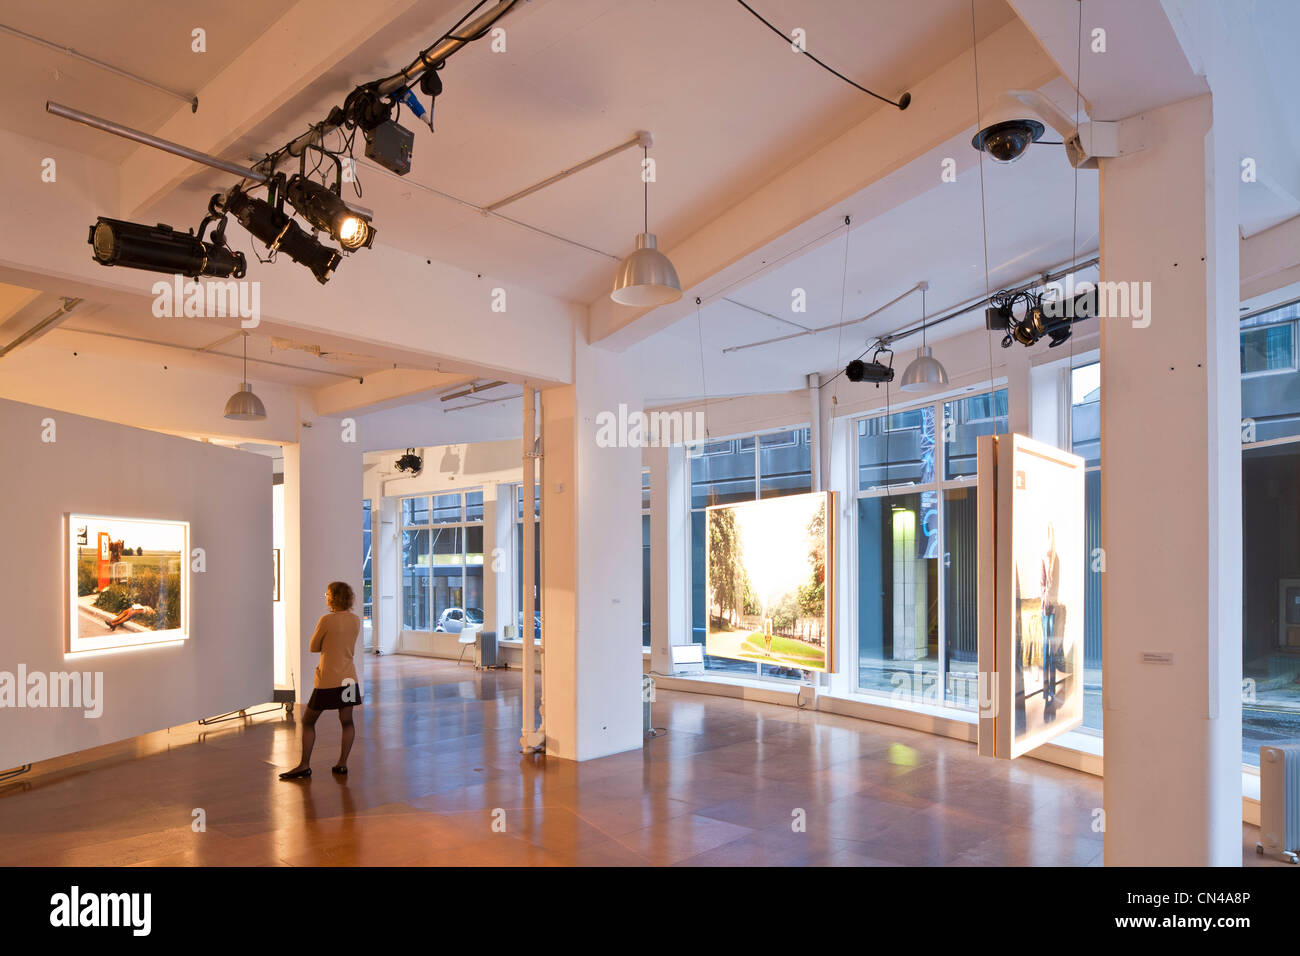 United Kingdom, London, Bankside, The Wapping Project Bankside, contemporary photography gallery - Stock Image